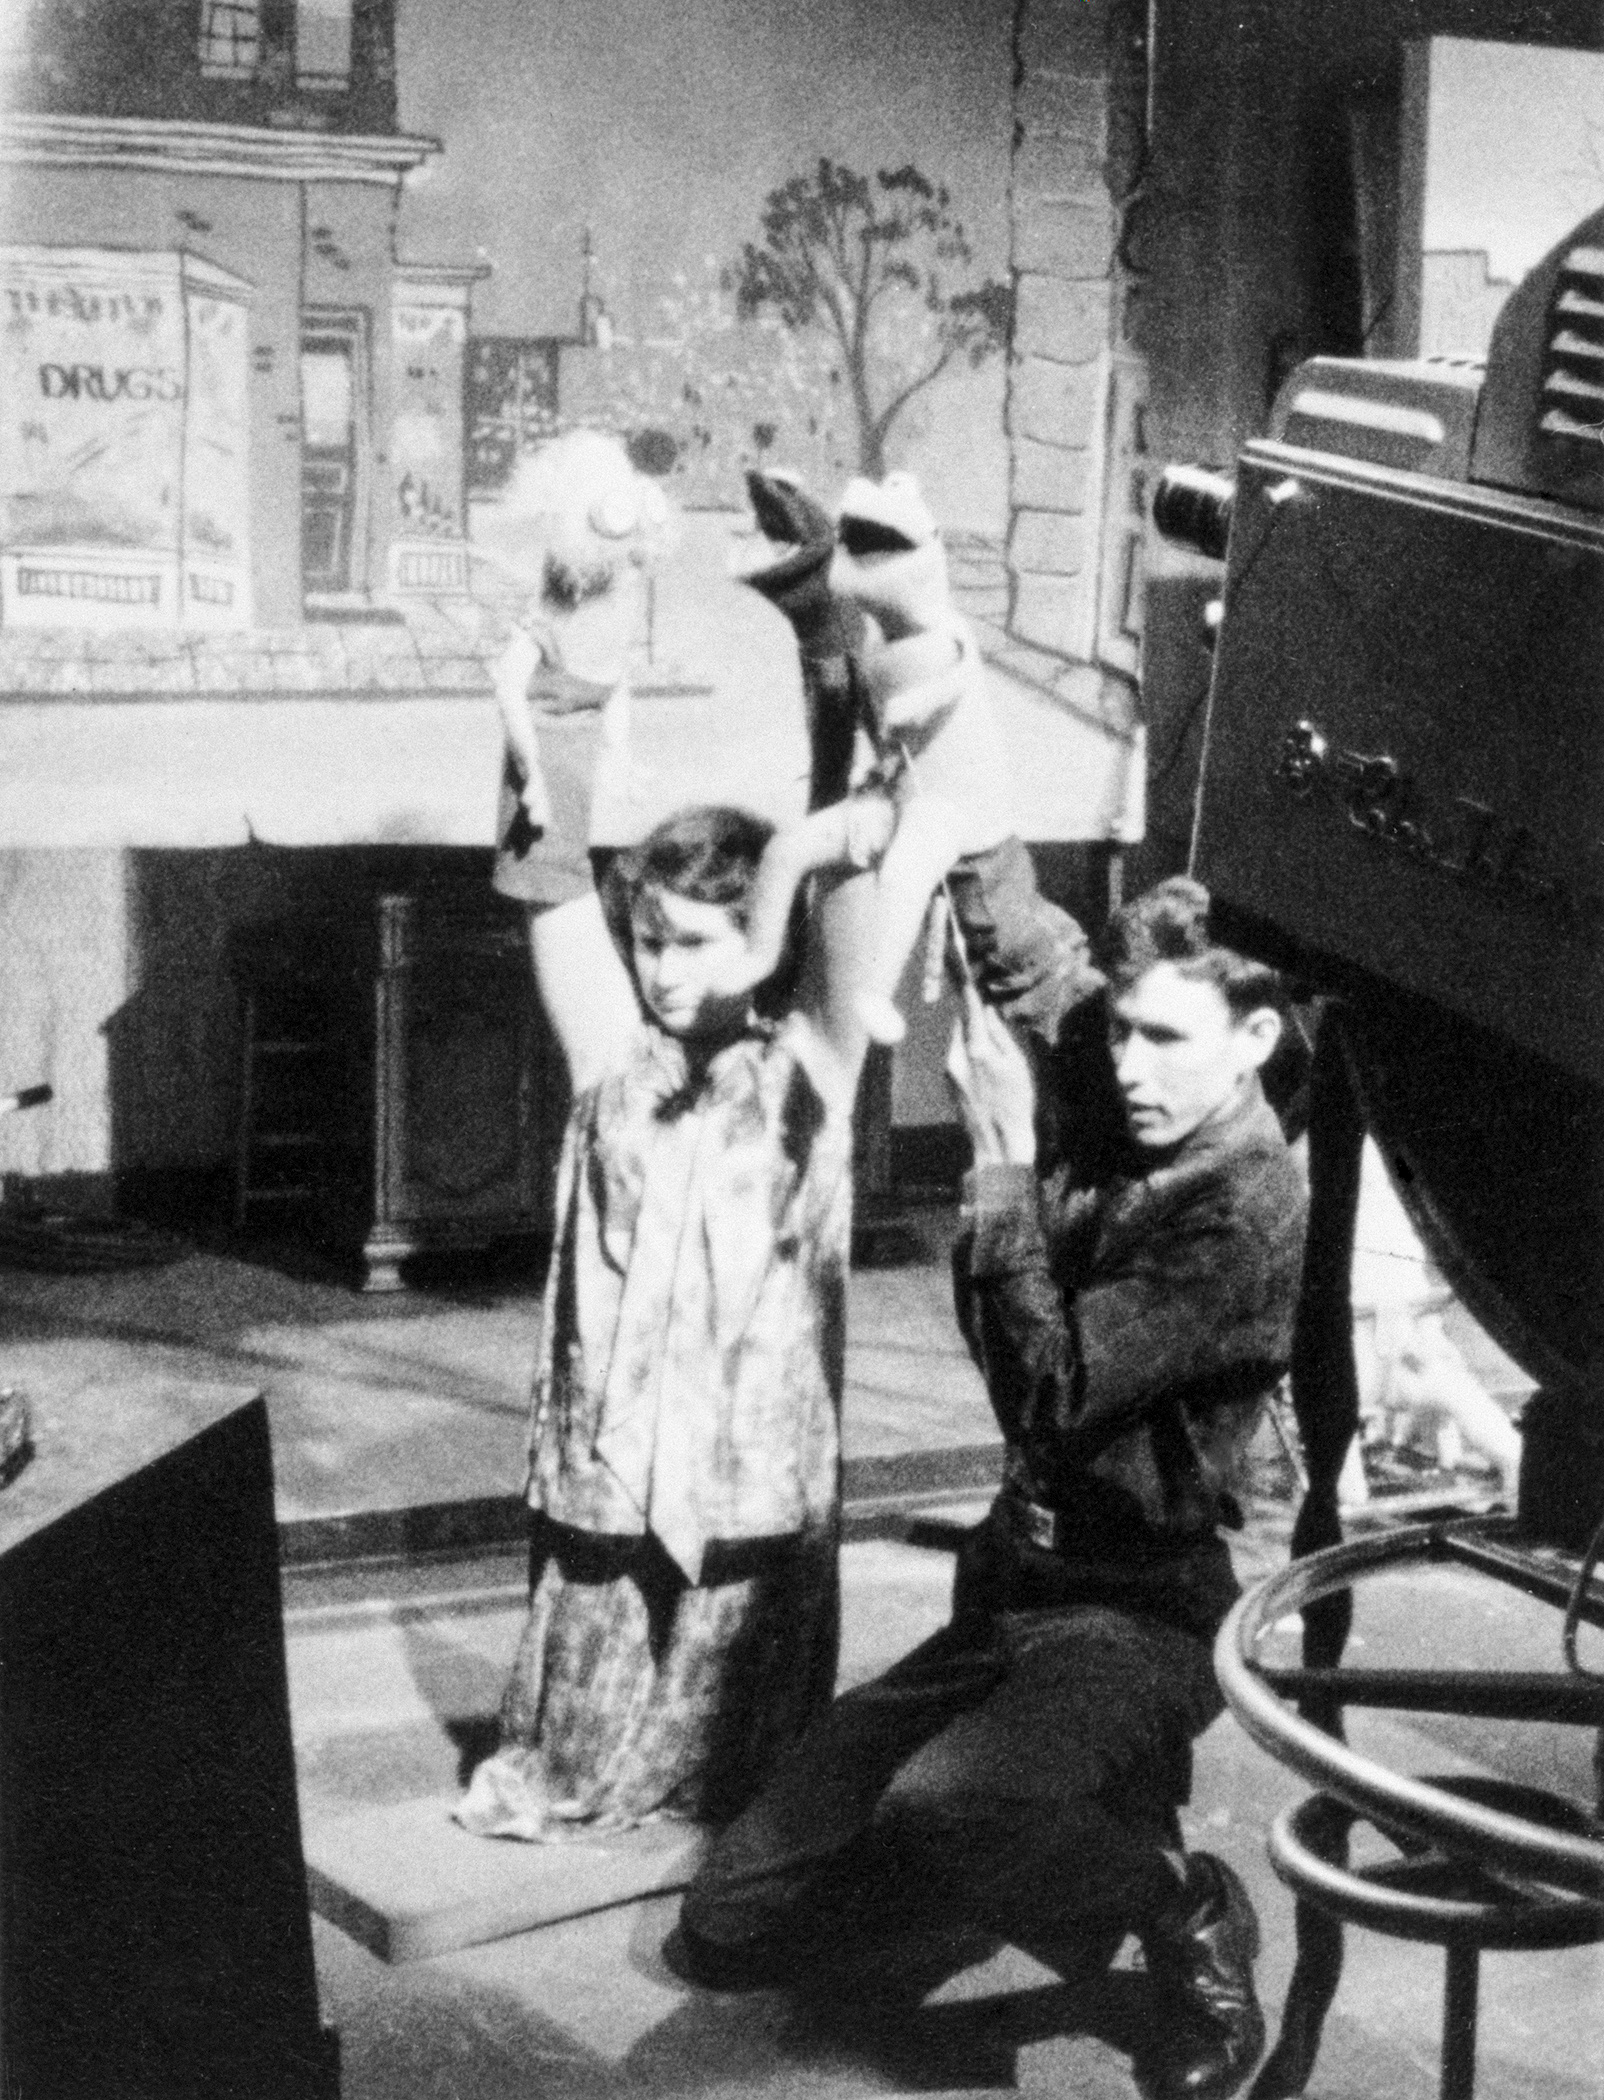 """Jim and Jane Henson on their knees performing with their puppets in front of a television camera and television monitor on the set of """"Sam and Friends."""""""